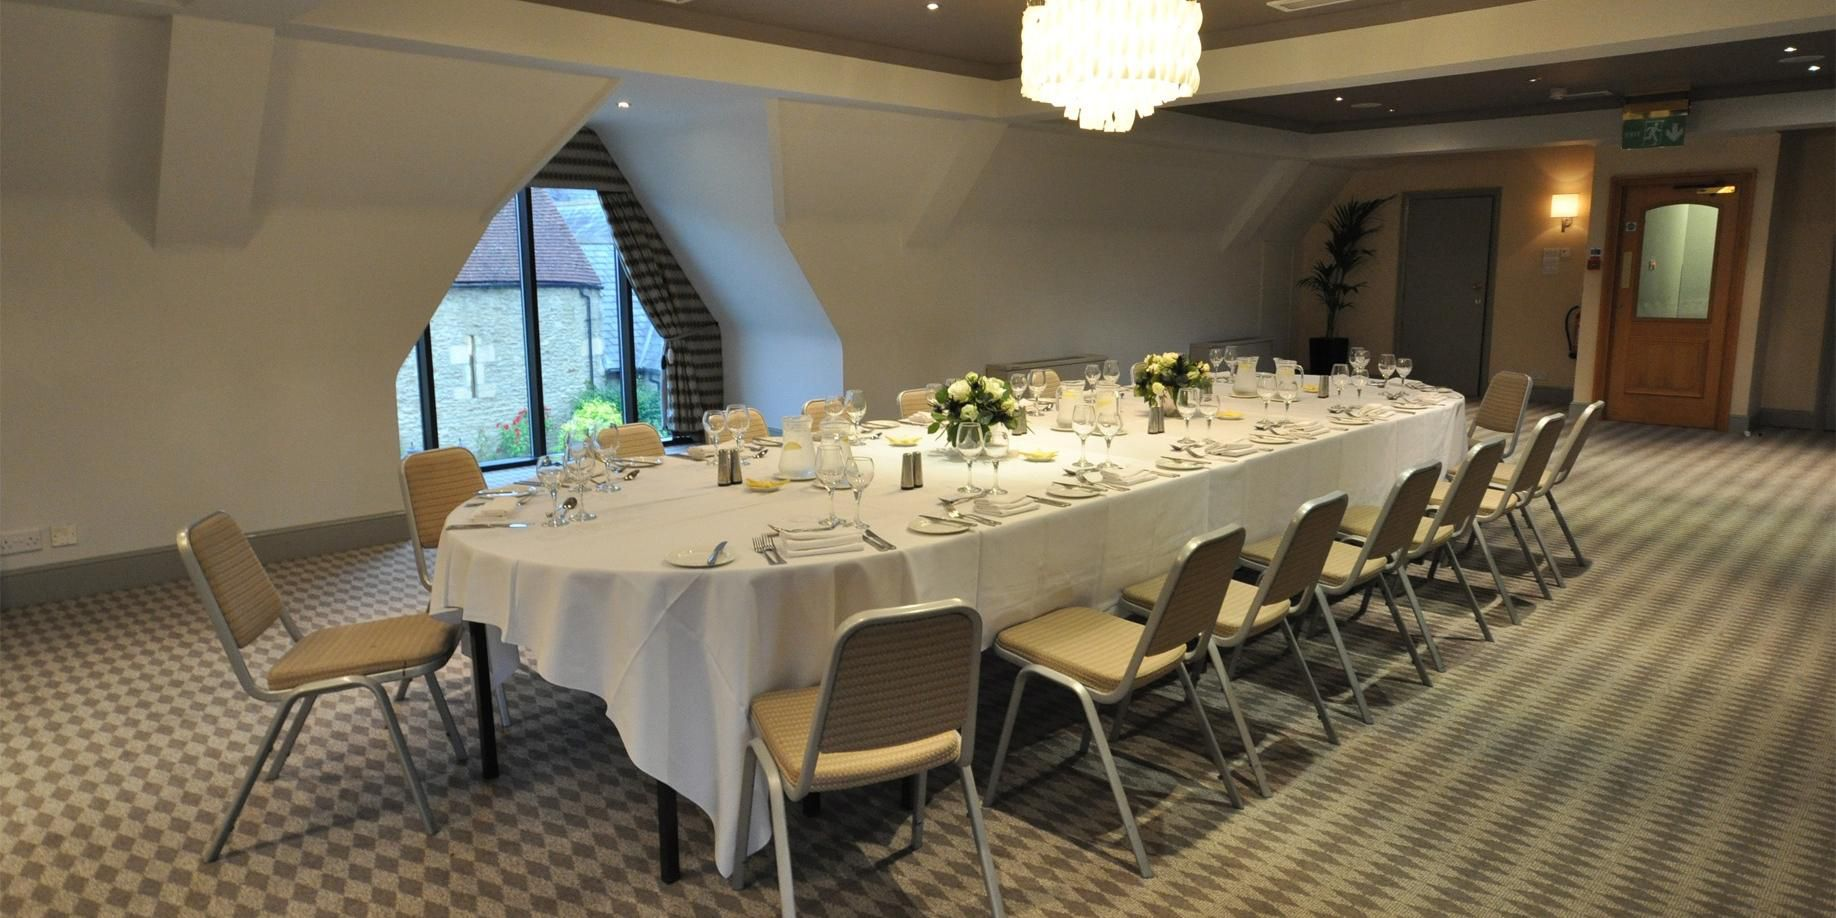 Private dining options, overlooking the river Thames in Oxford